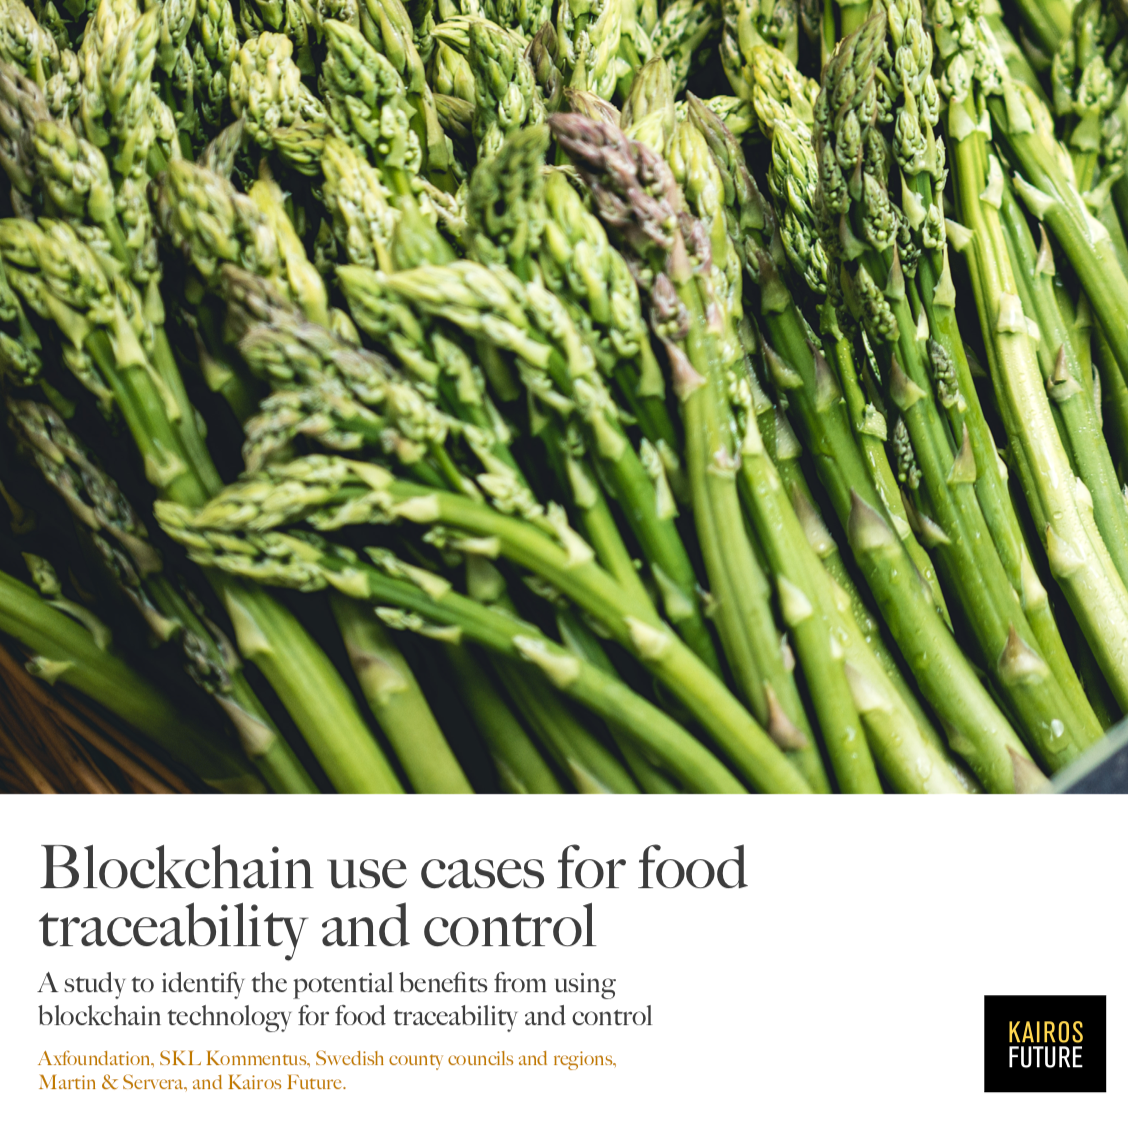 Interesting reading, March 2018.    Blockchain use cases for food traceability and control     By: Axfoundation, SKL Kommentus, Martin & Servera, Kairos Future, and Sustainable Public Procurement.   A study to identify the potential benefits from using blockchain technology for food traceability and control.